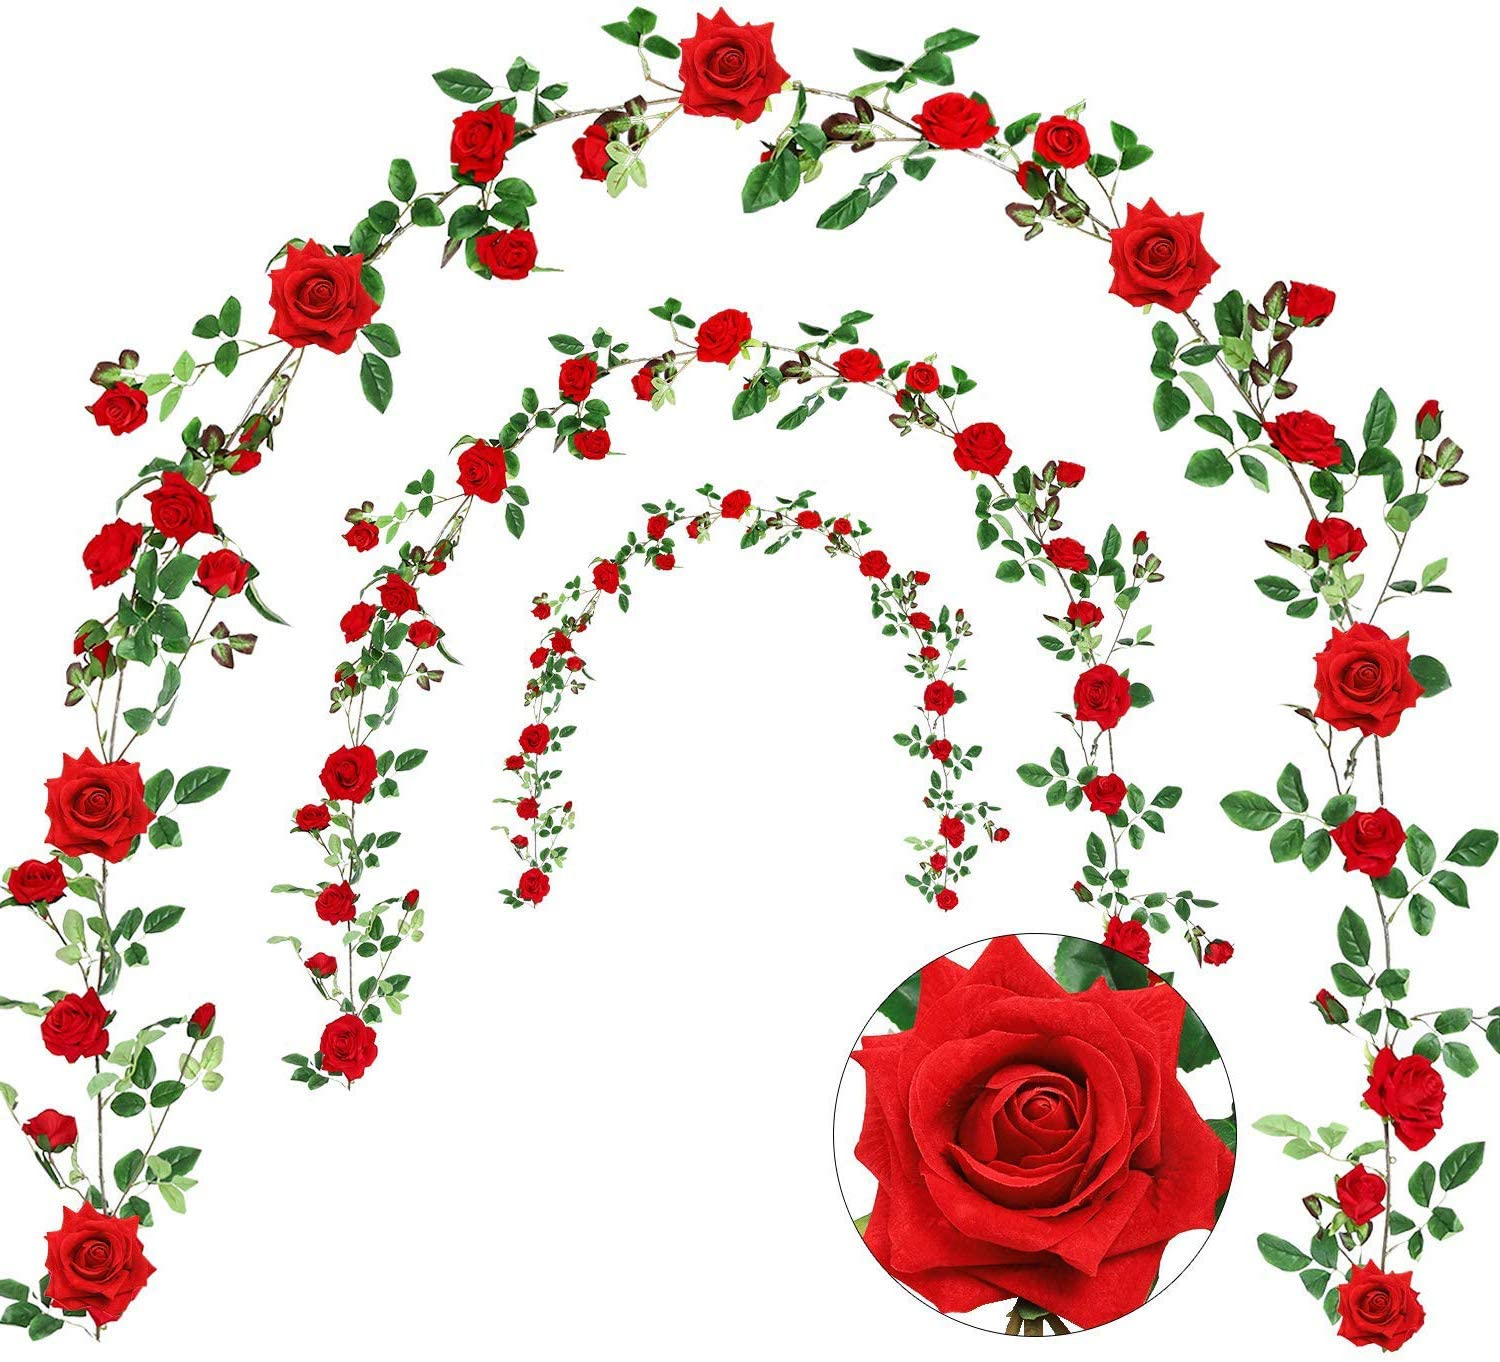 Veryhome Rose Vine Artificial Flower Garland Fake Hanging Rose Ivy Plants 6ft for Wedding Home Party Garden Arrangement Decor Pack of One (Red)